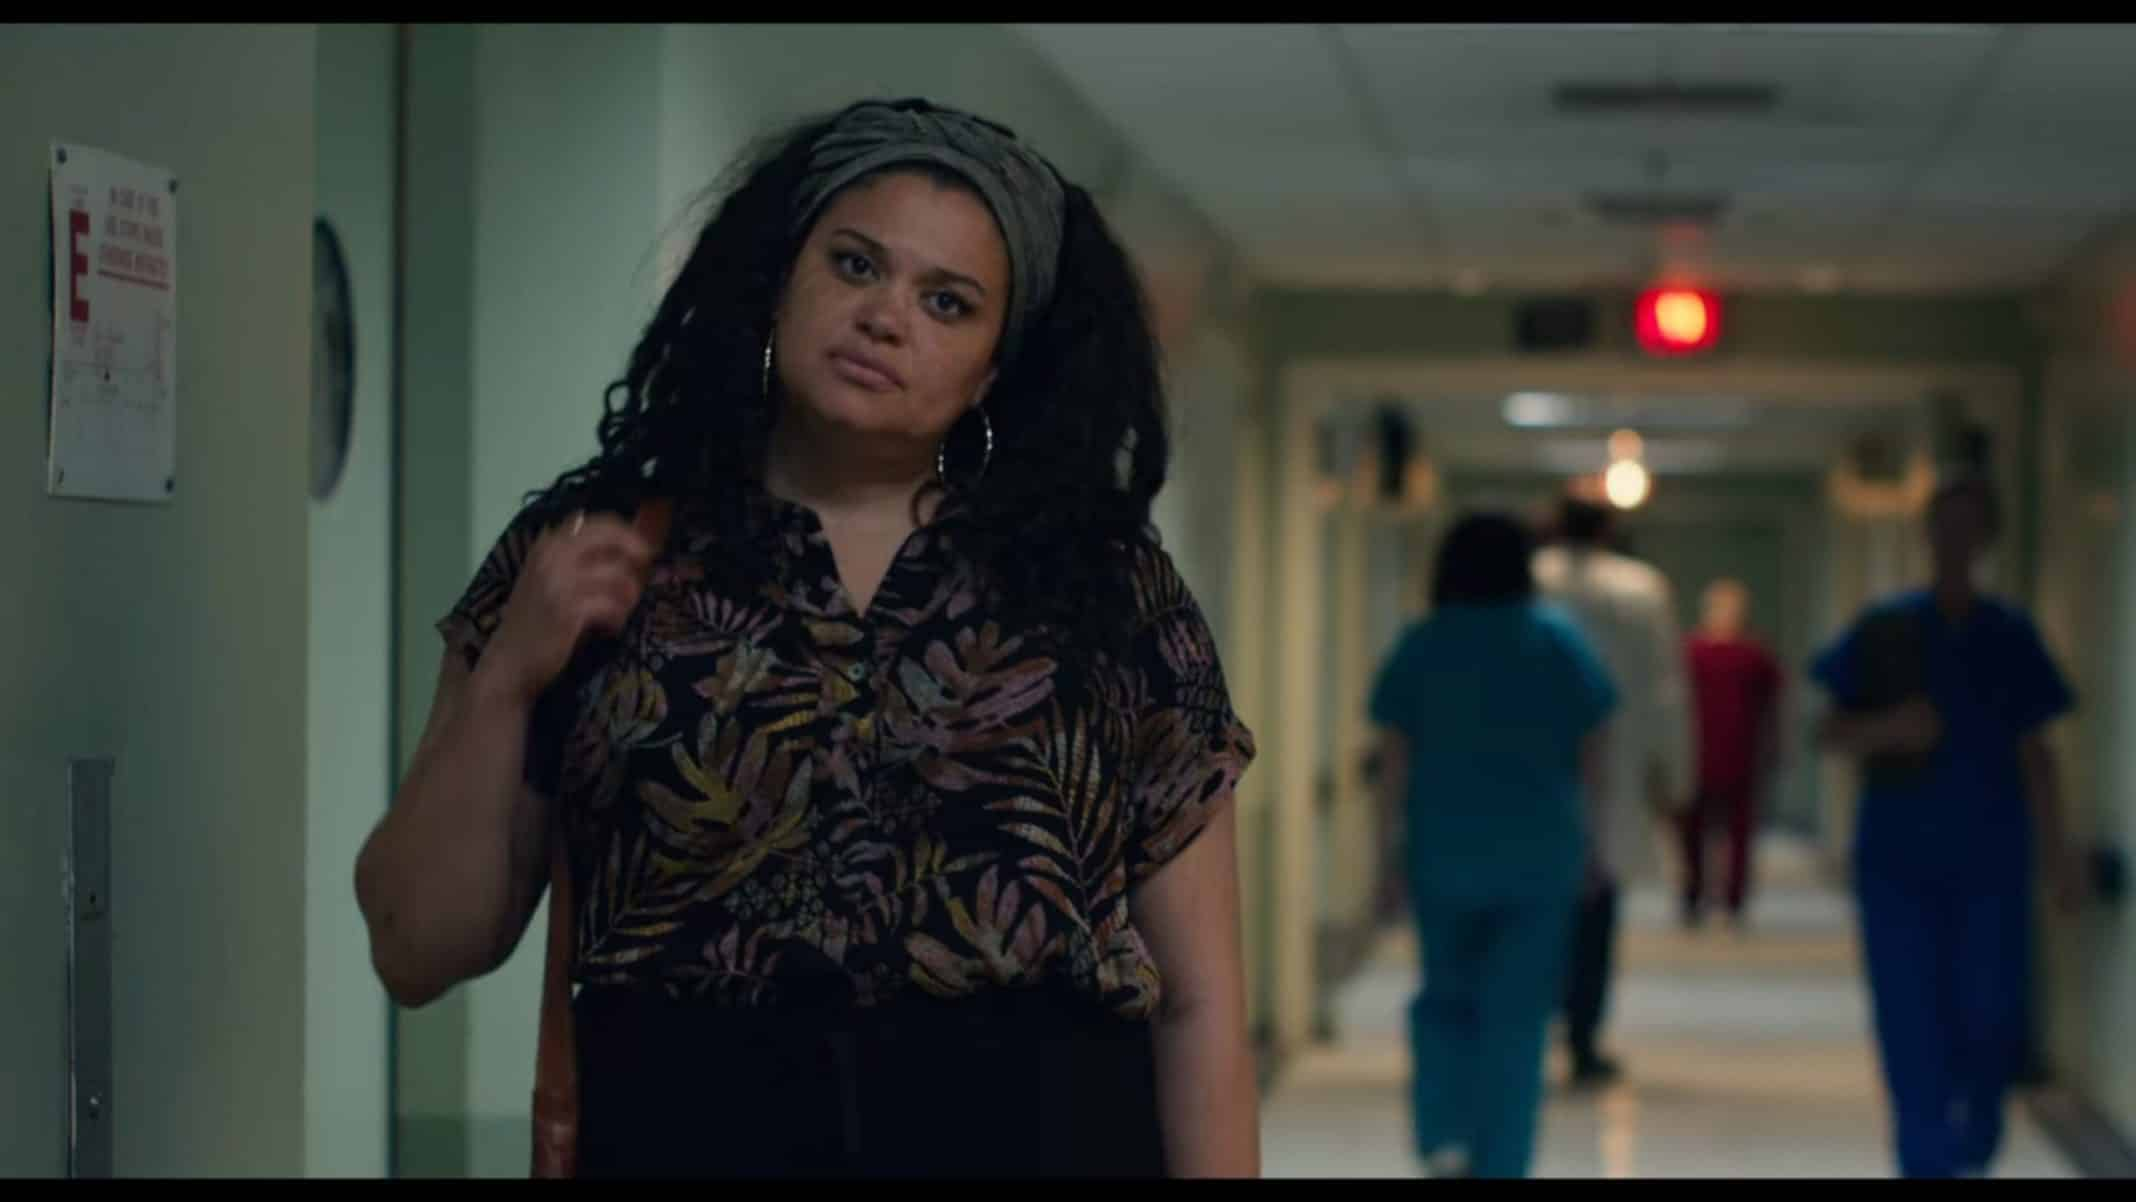 Cammy (Michelle Buteau) walking around in a hospital.